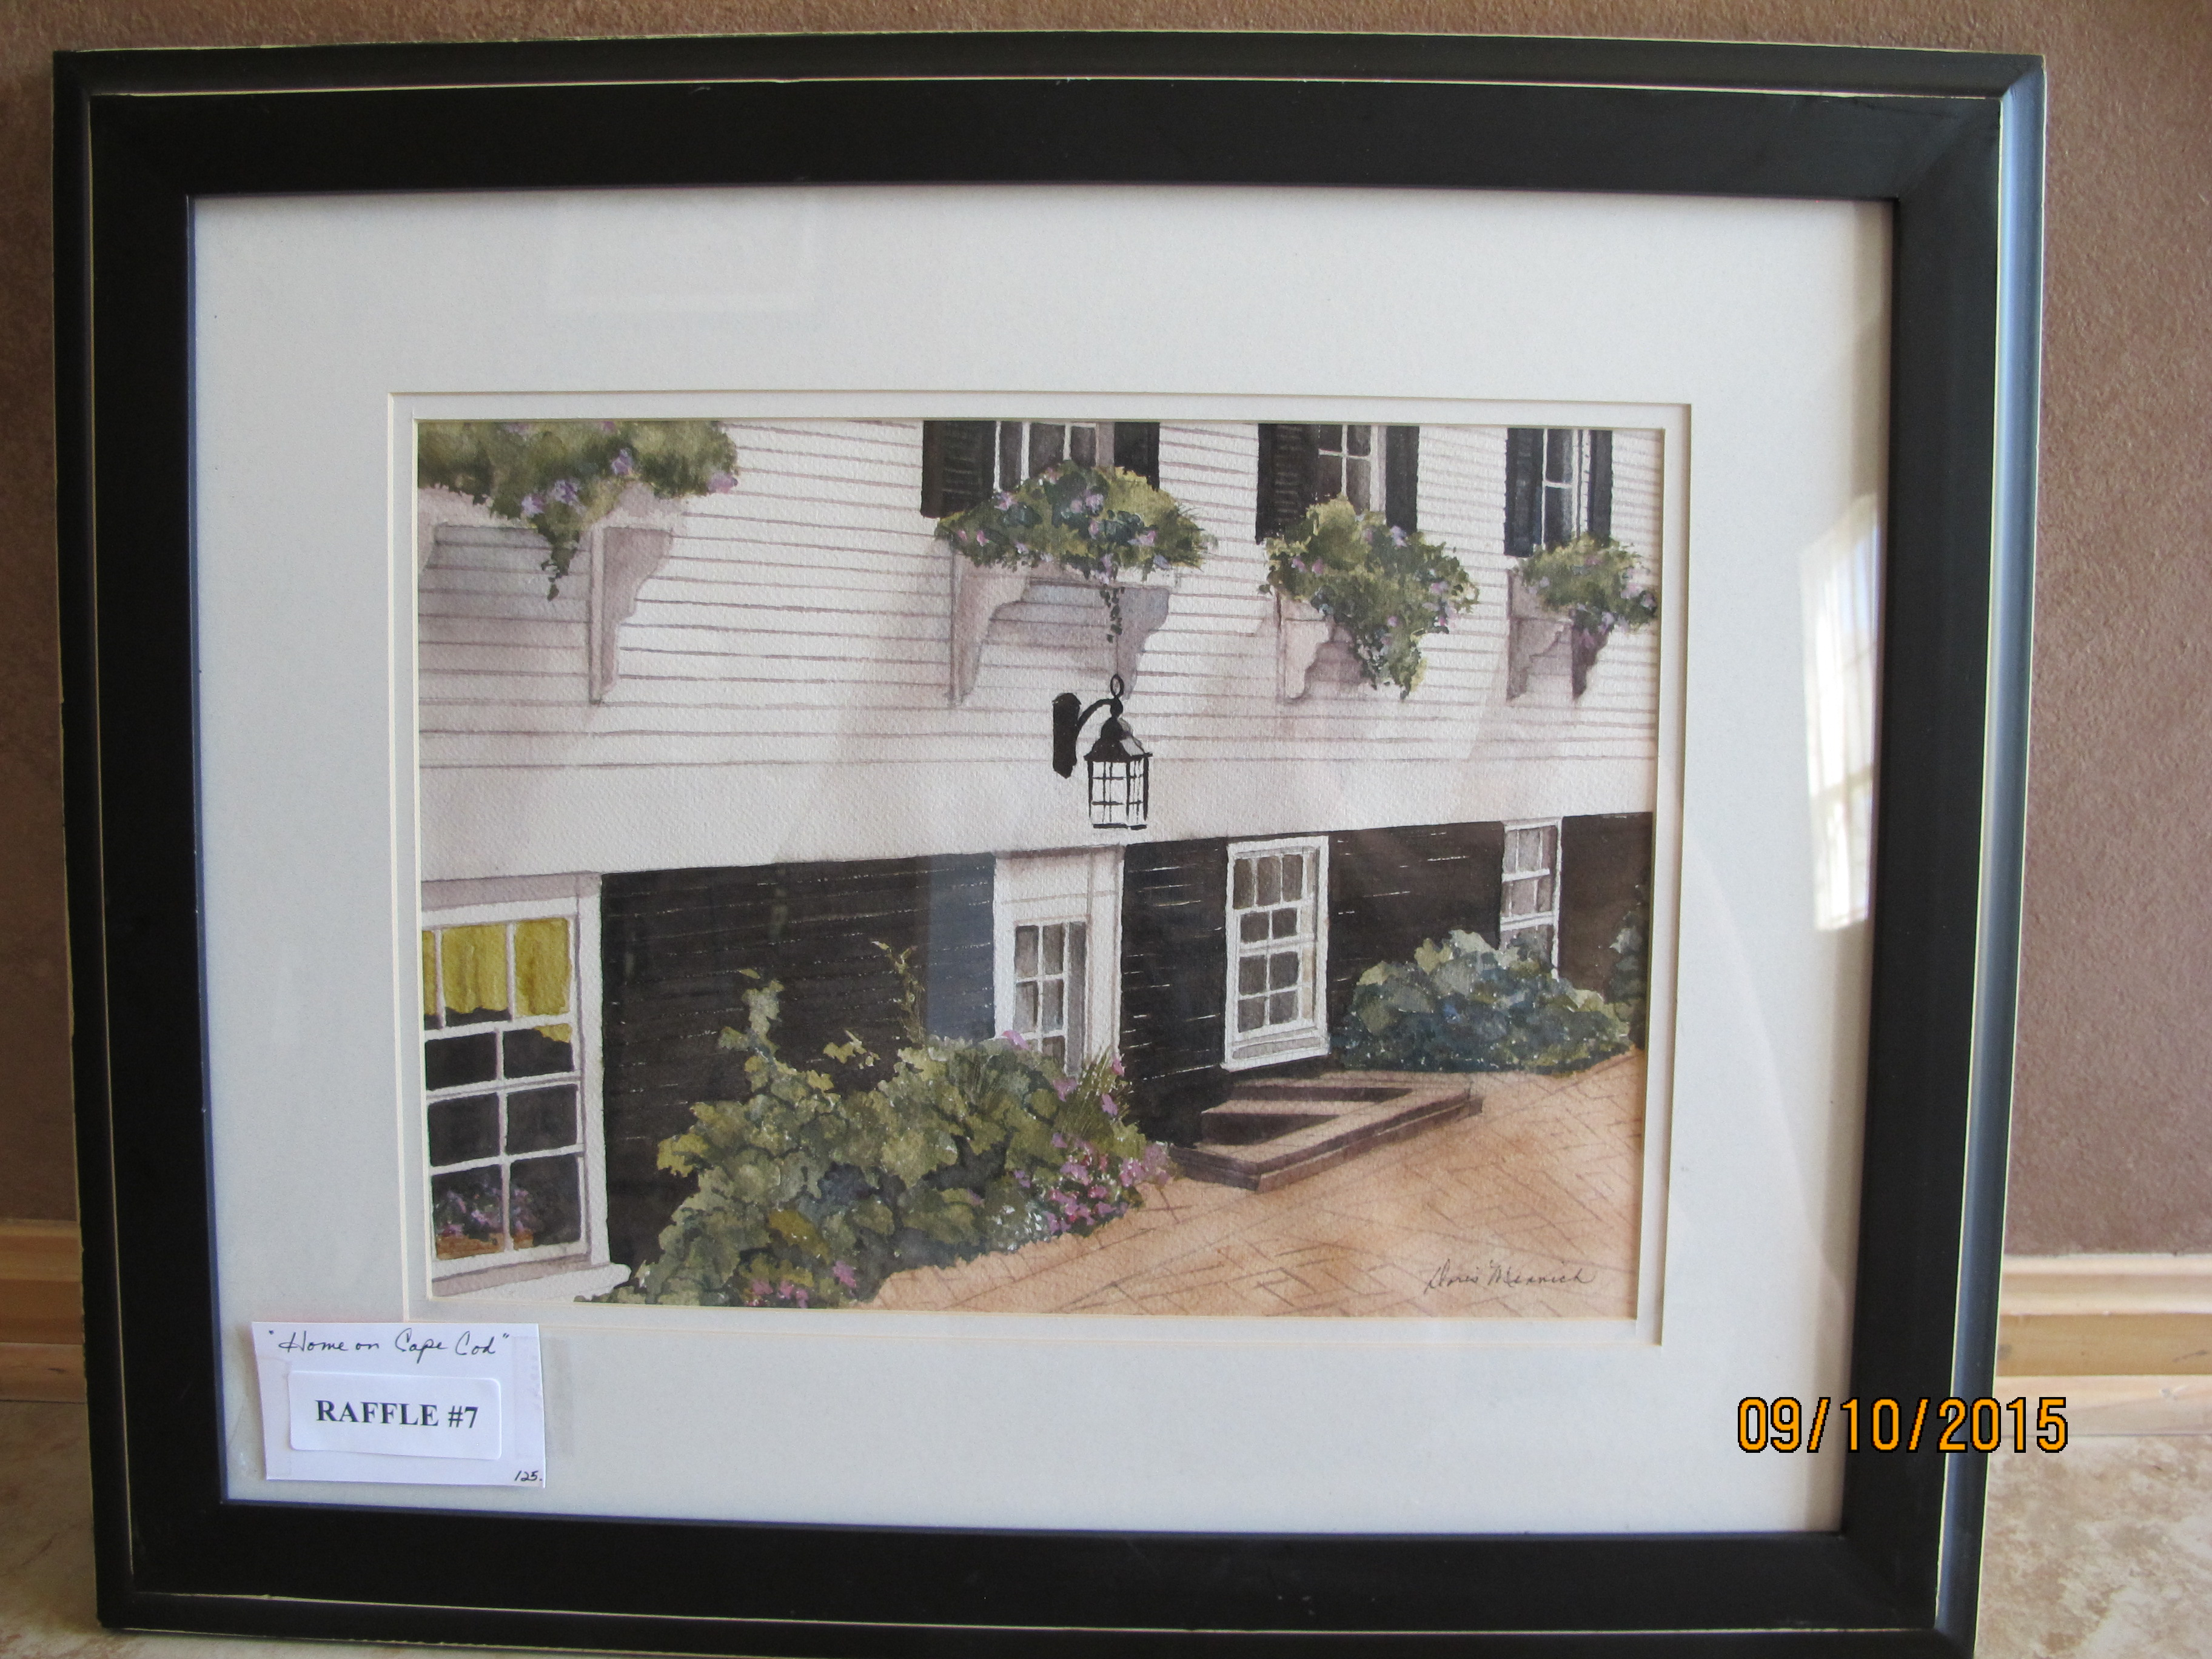 "RAFFLE #7 Framed Art ""Home on Cape Cod"" Thank you local artist, Doris Minnich, for donating this beautiful watercolor painting! A beautiful, framed watercolor painting, by local artist, Doris Minnich Value: $125 *Raffle open to local participants only due to prize size."